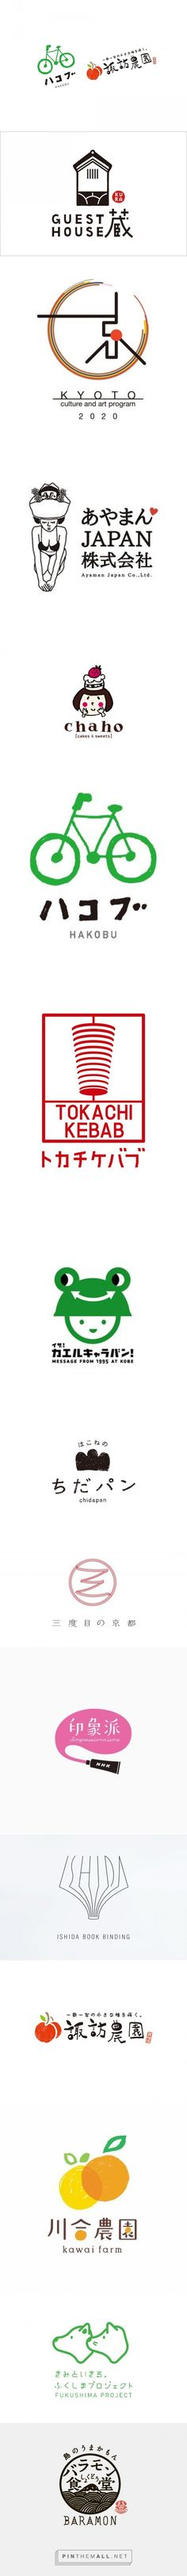 Quirky Japanese Logos | Abduzeedo Design Inspiration - created via https://pinthemall.net